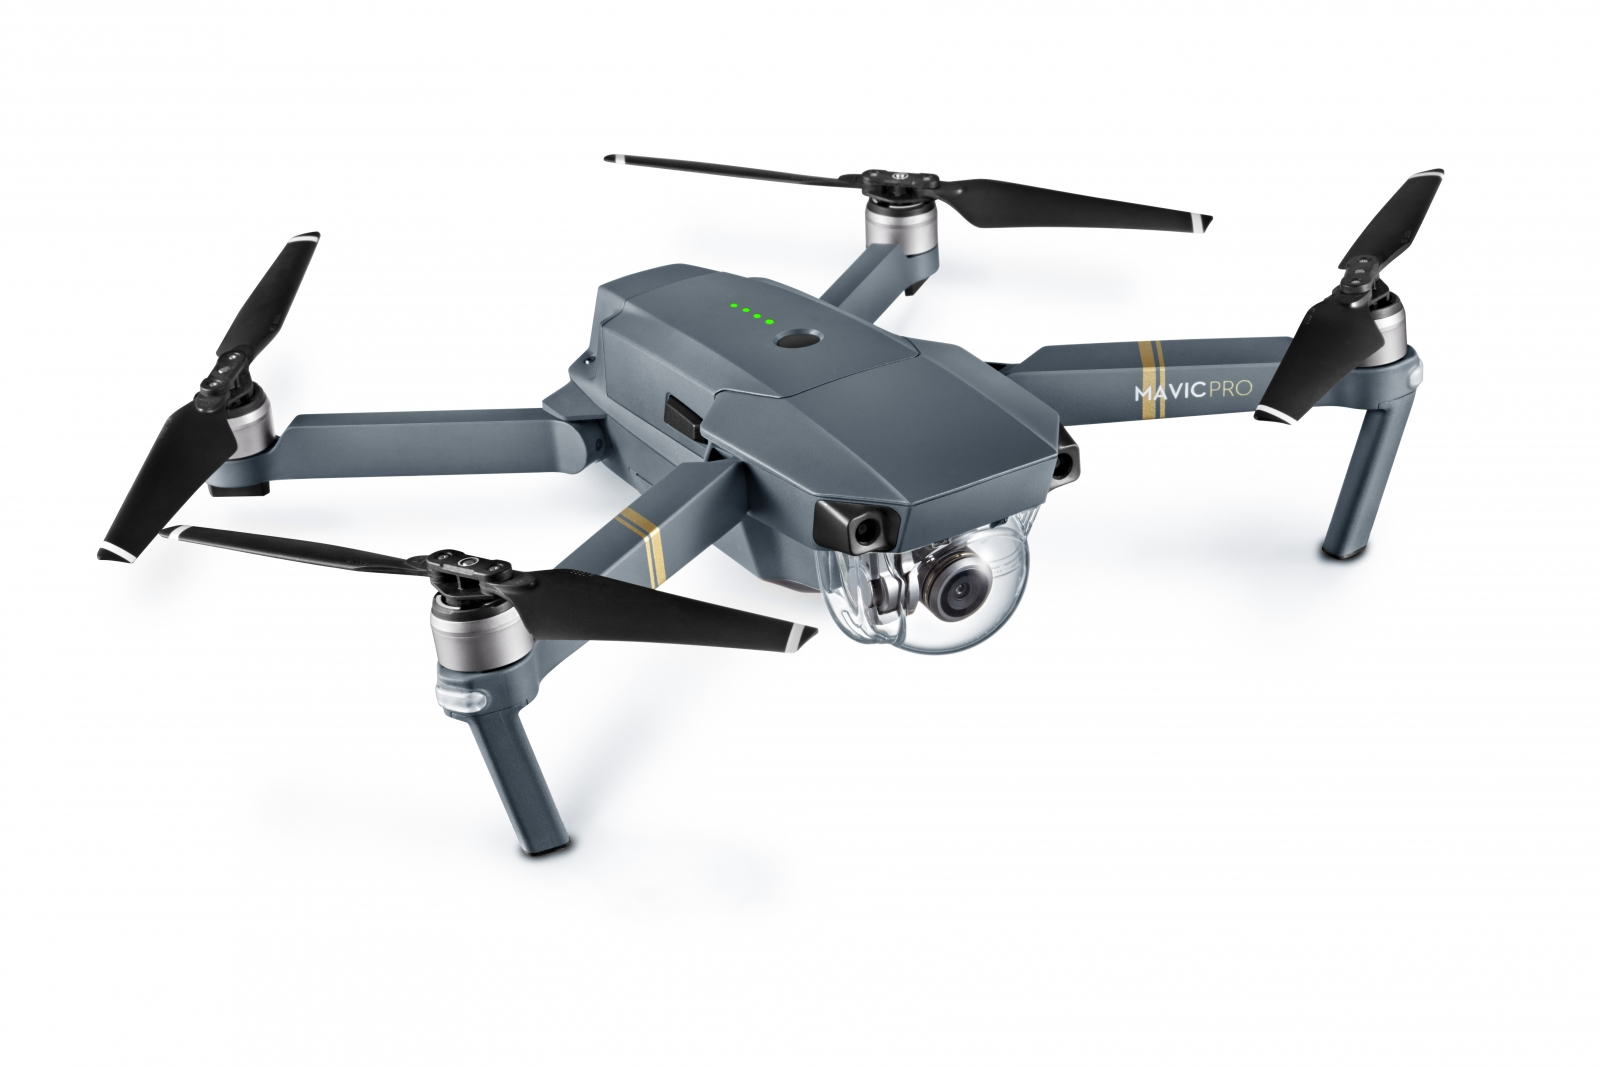 DJI launches foldable Mavic Pro 'personal drone' for aerial selfies ...